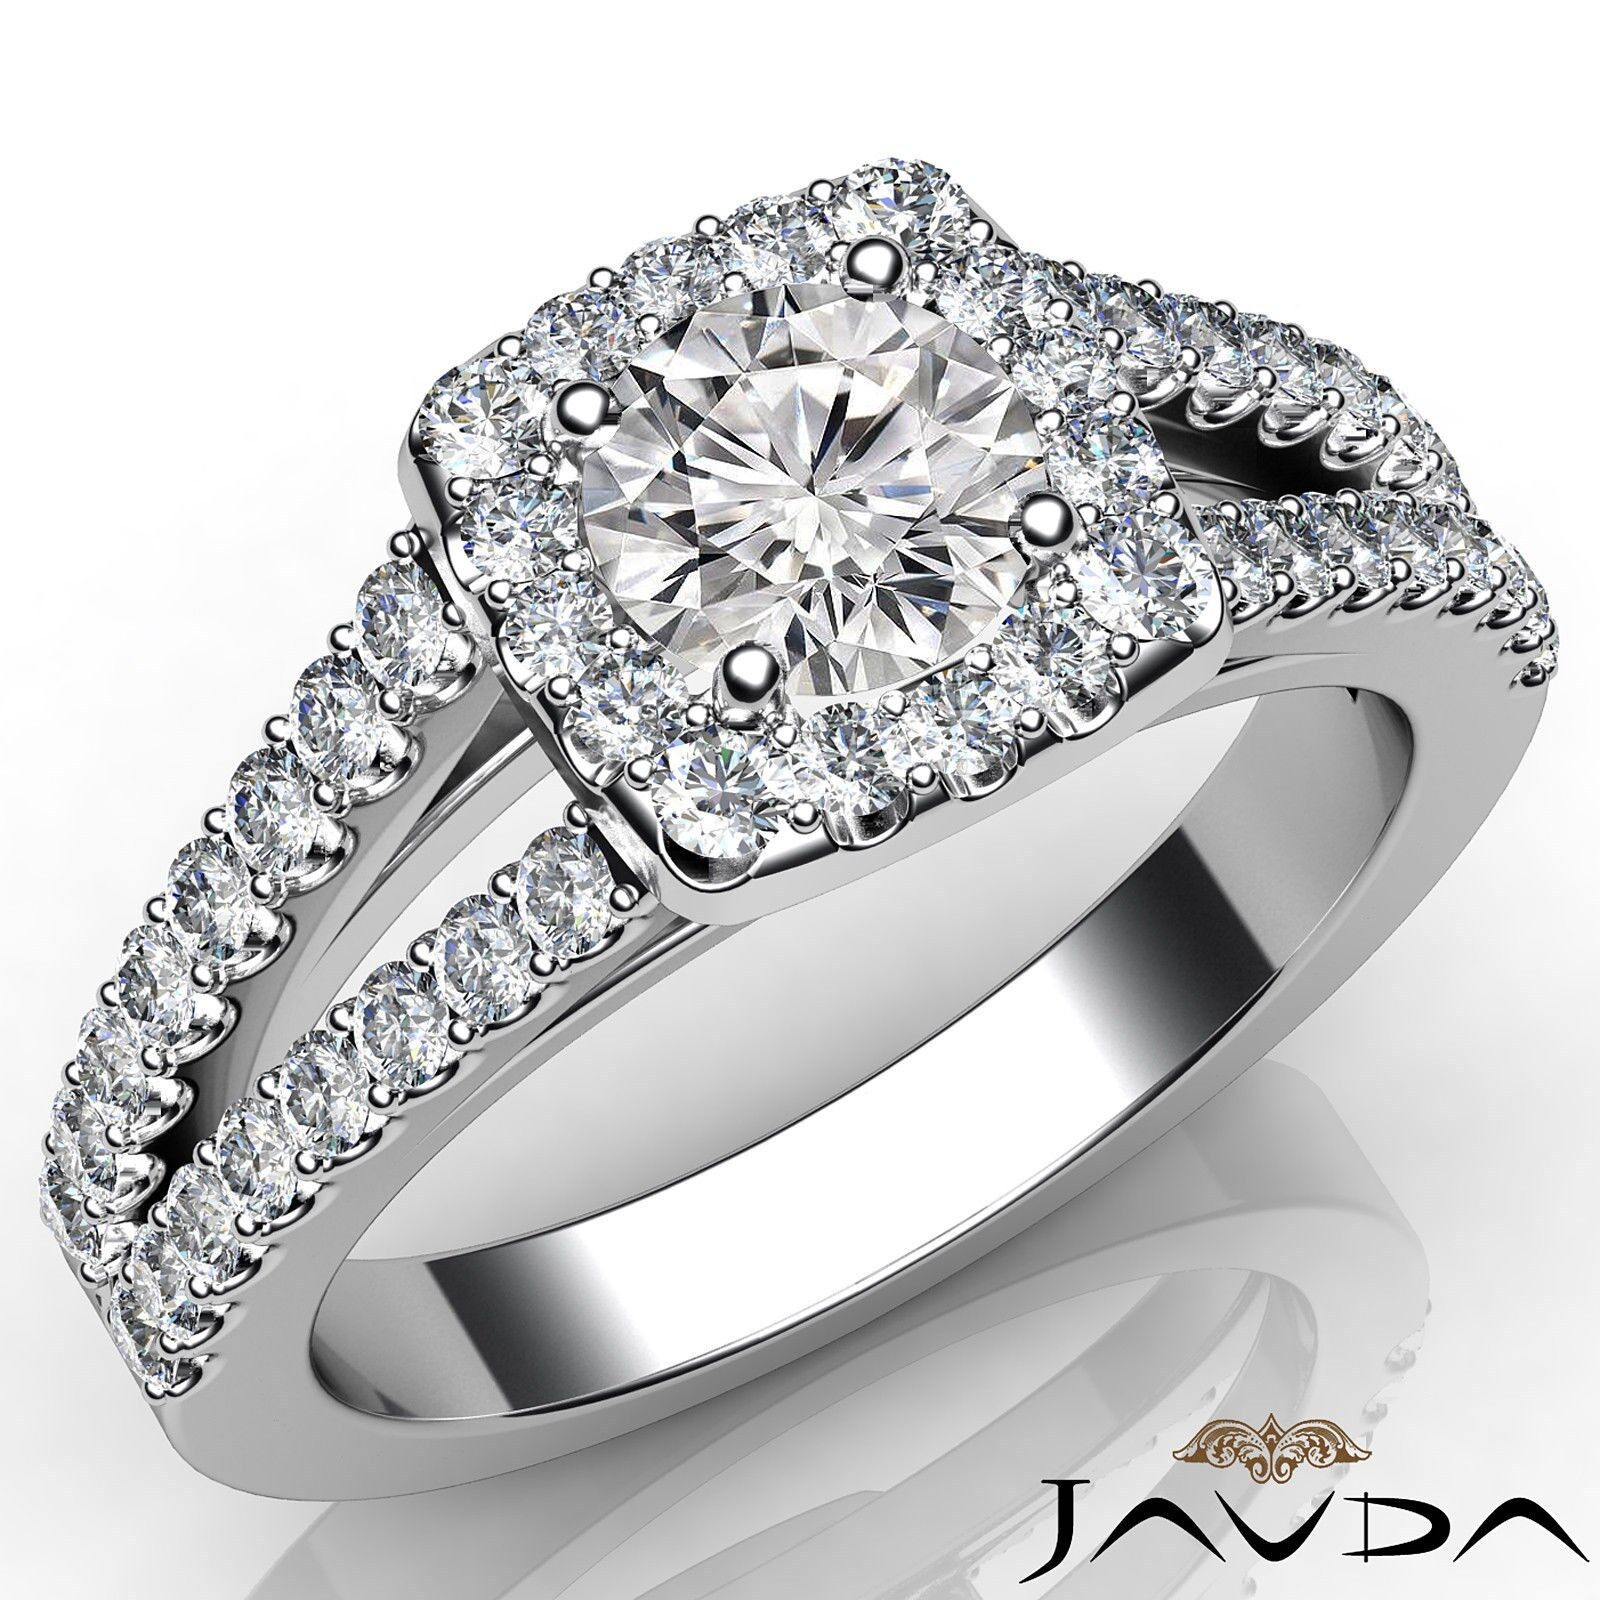 Round Cut Split Shank Diamond Engagement French Pave Set Ring GIA E SI1 1 1/4ct.